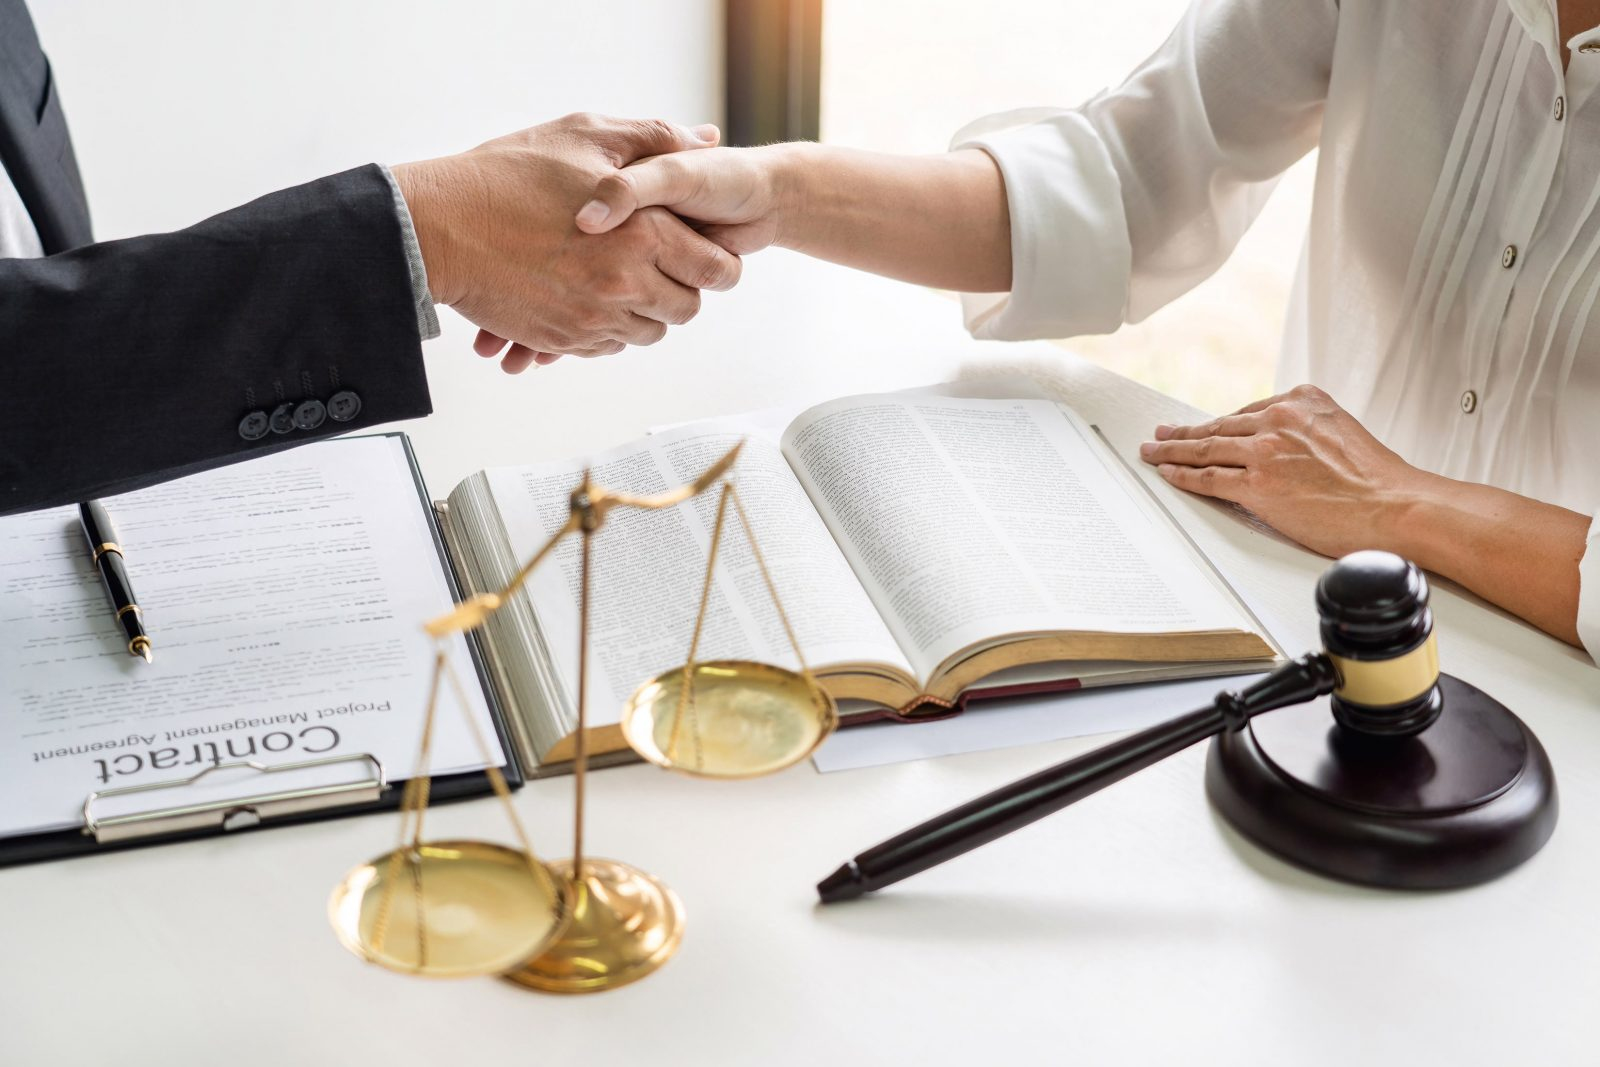 people shaking hands over a desk with a book, scales and other legal paraphernalia